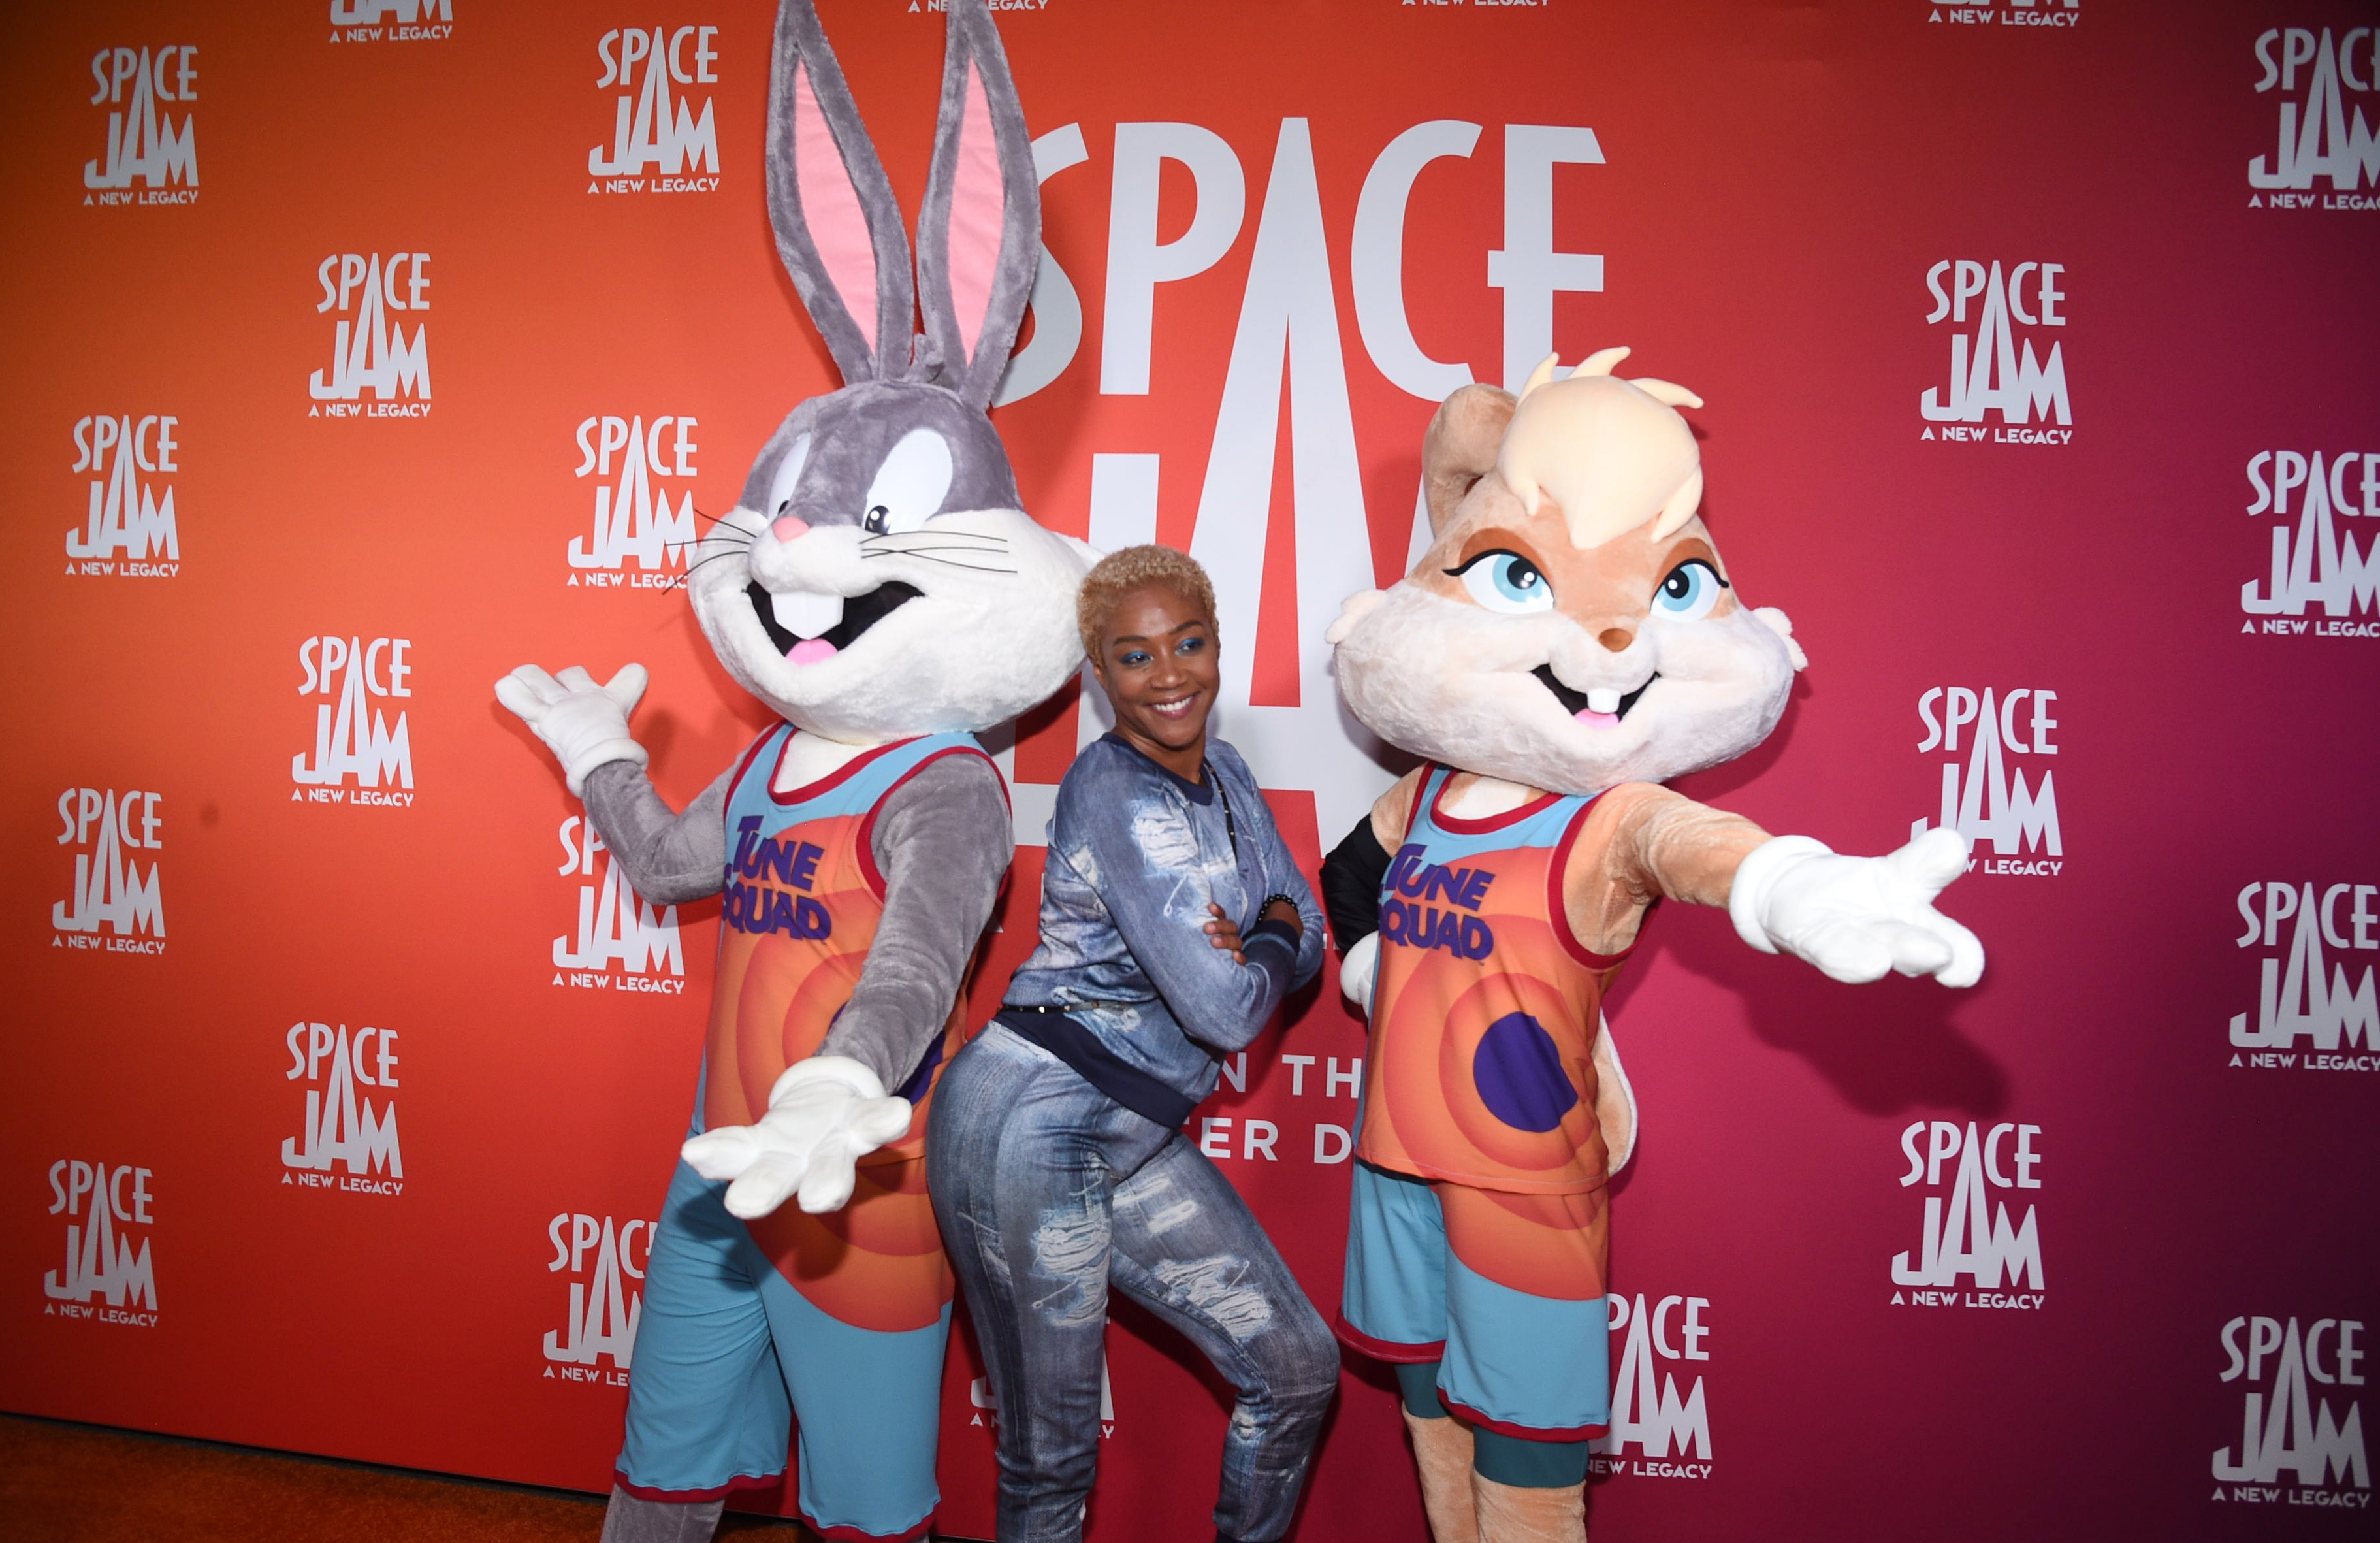 SPACE JAM: A NEW LEGACY IN THE PARK AFTER DARK